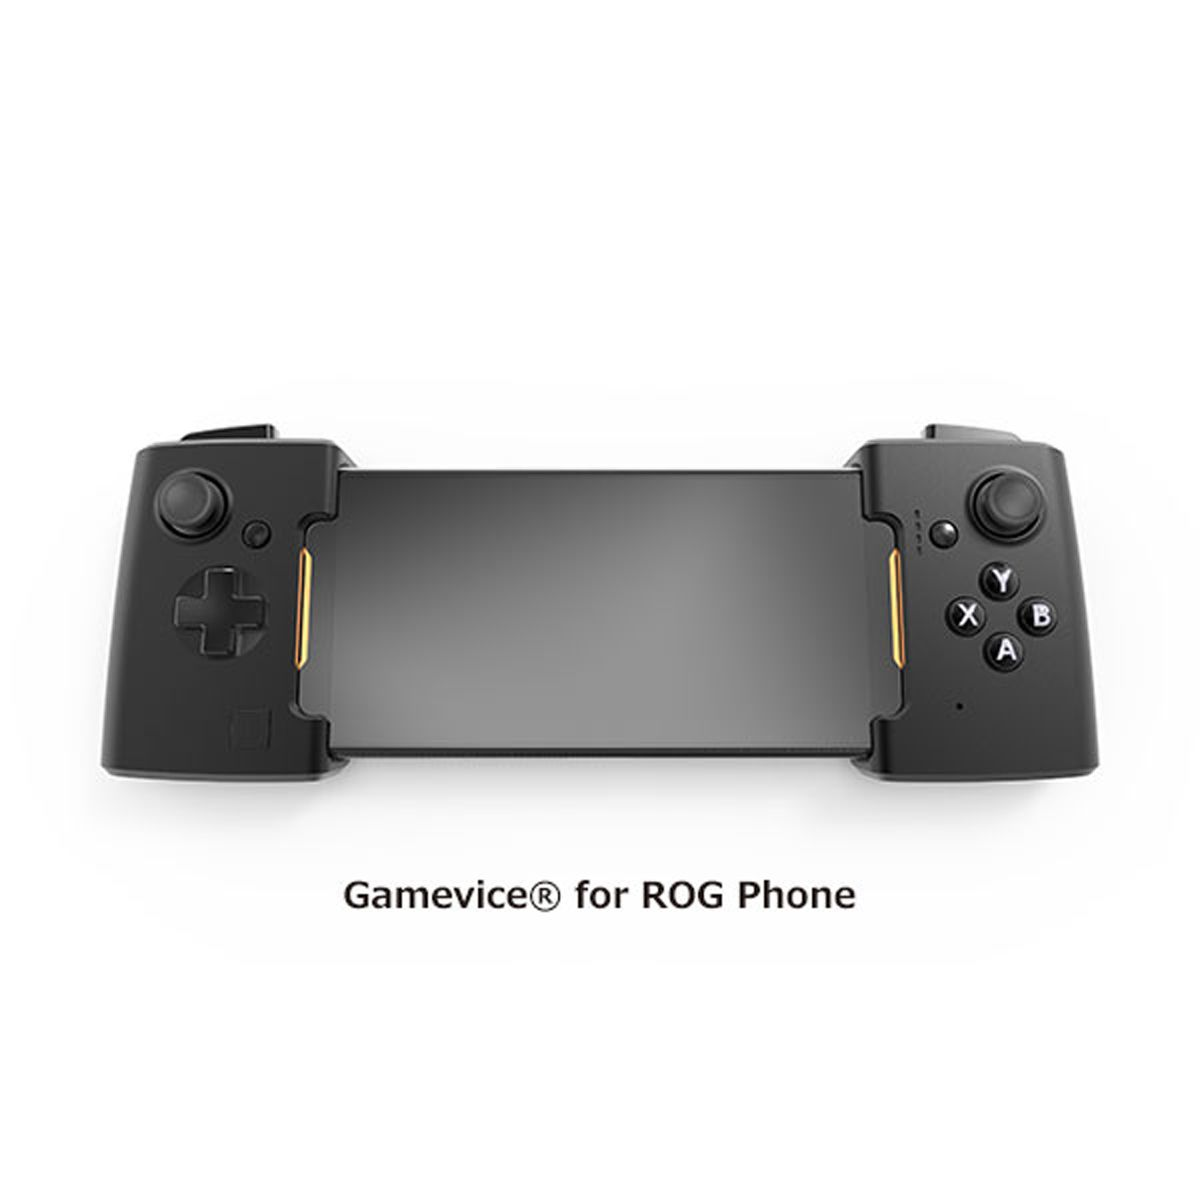 ASUS、ROG Phone専用アクセサリー「Gamevice for ROG Phone」販売再開